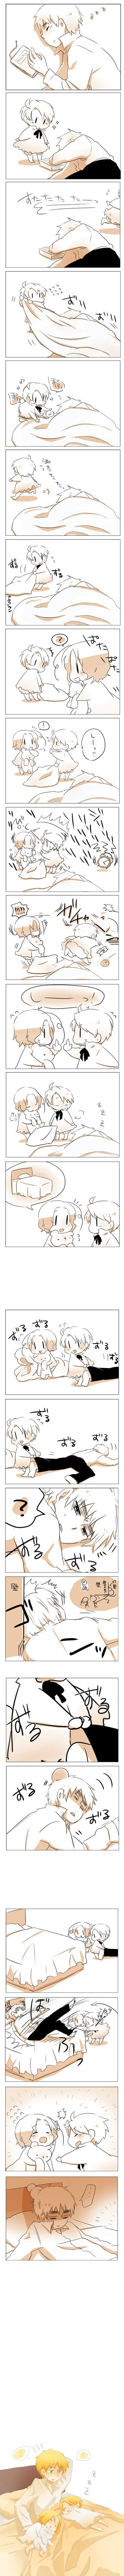 Arthur's Nap by とこ -- this has to be one of the cutest hetalia fancomics i've ever seen!! X3